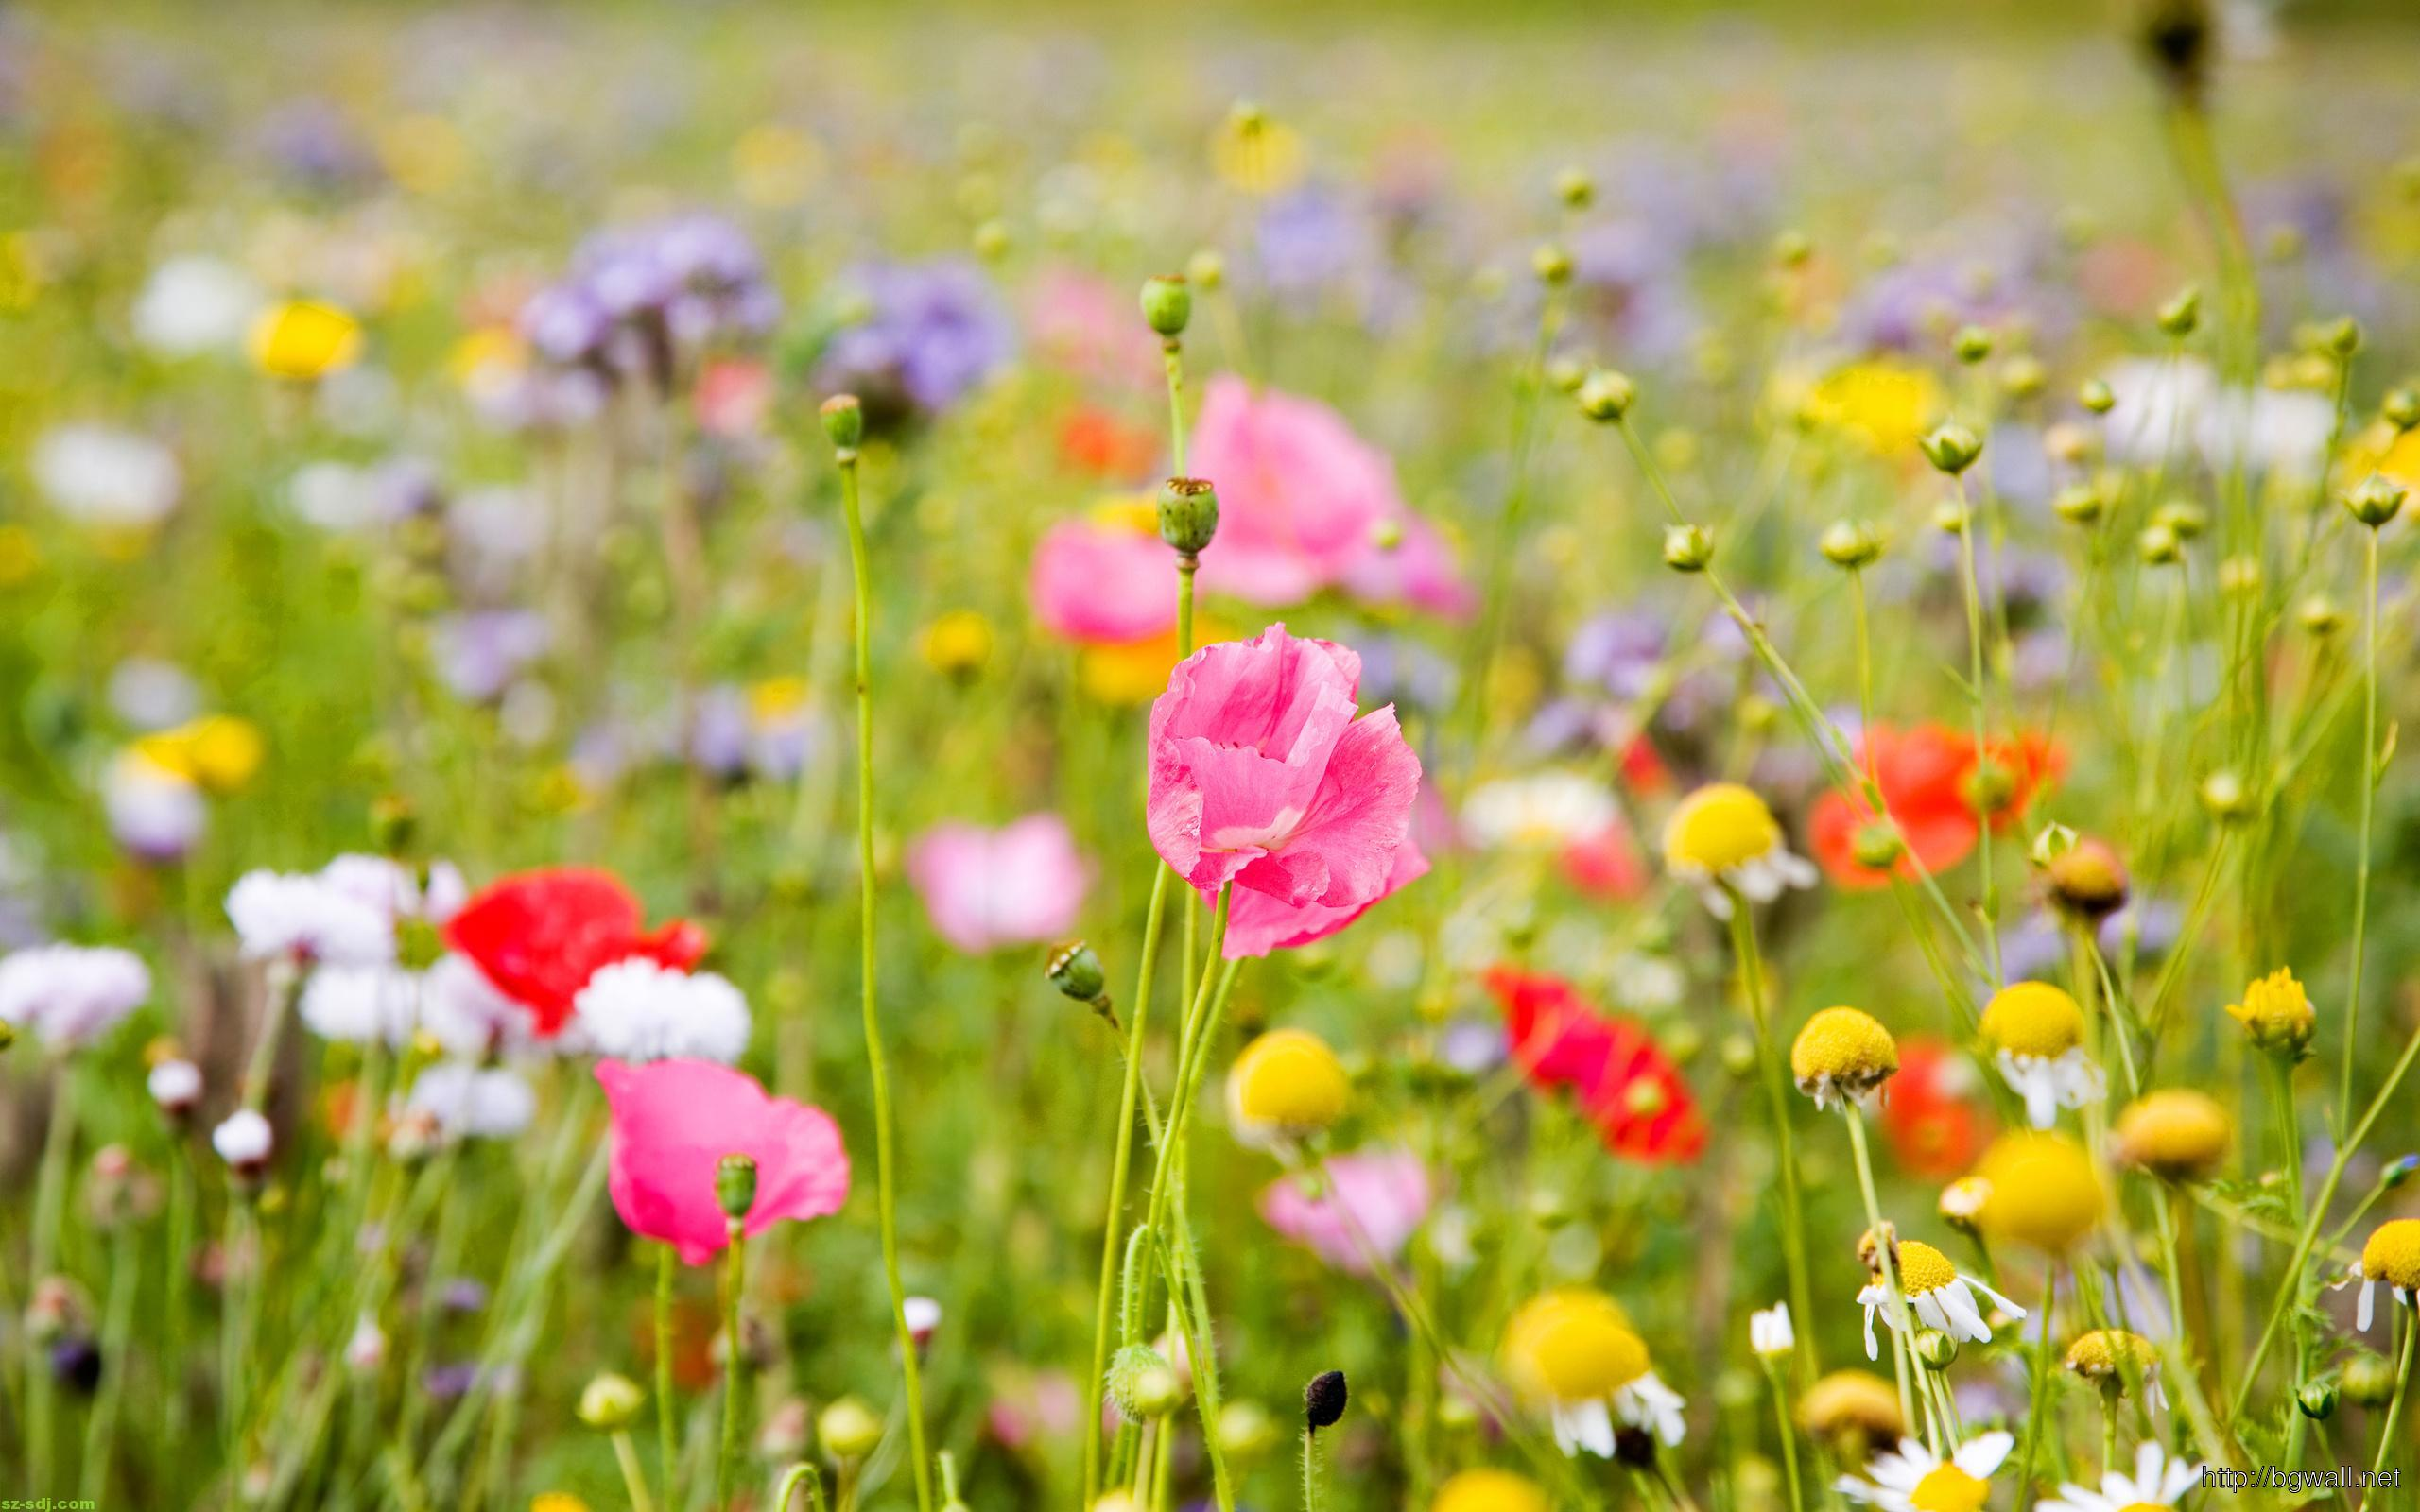 Colorful-Flower-Meadow-Wallpaper-High-Definition